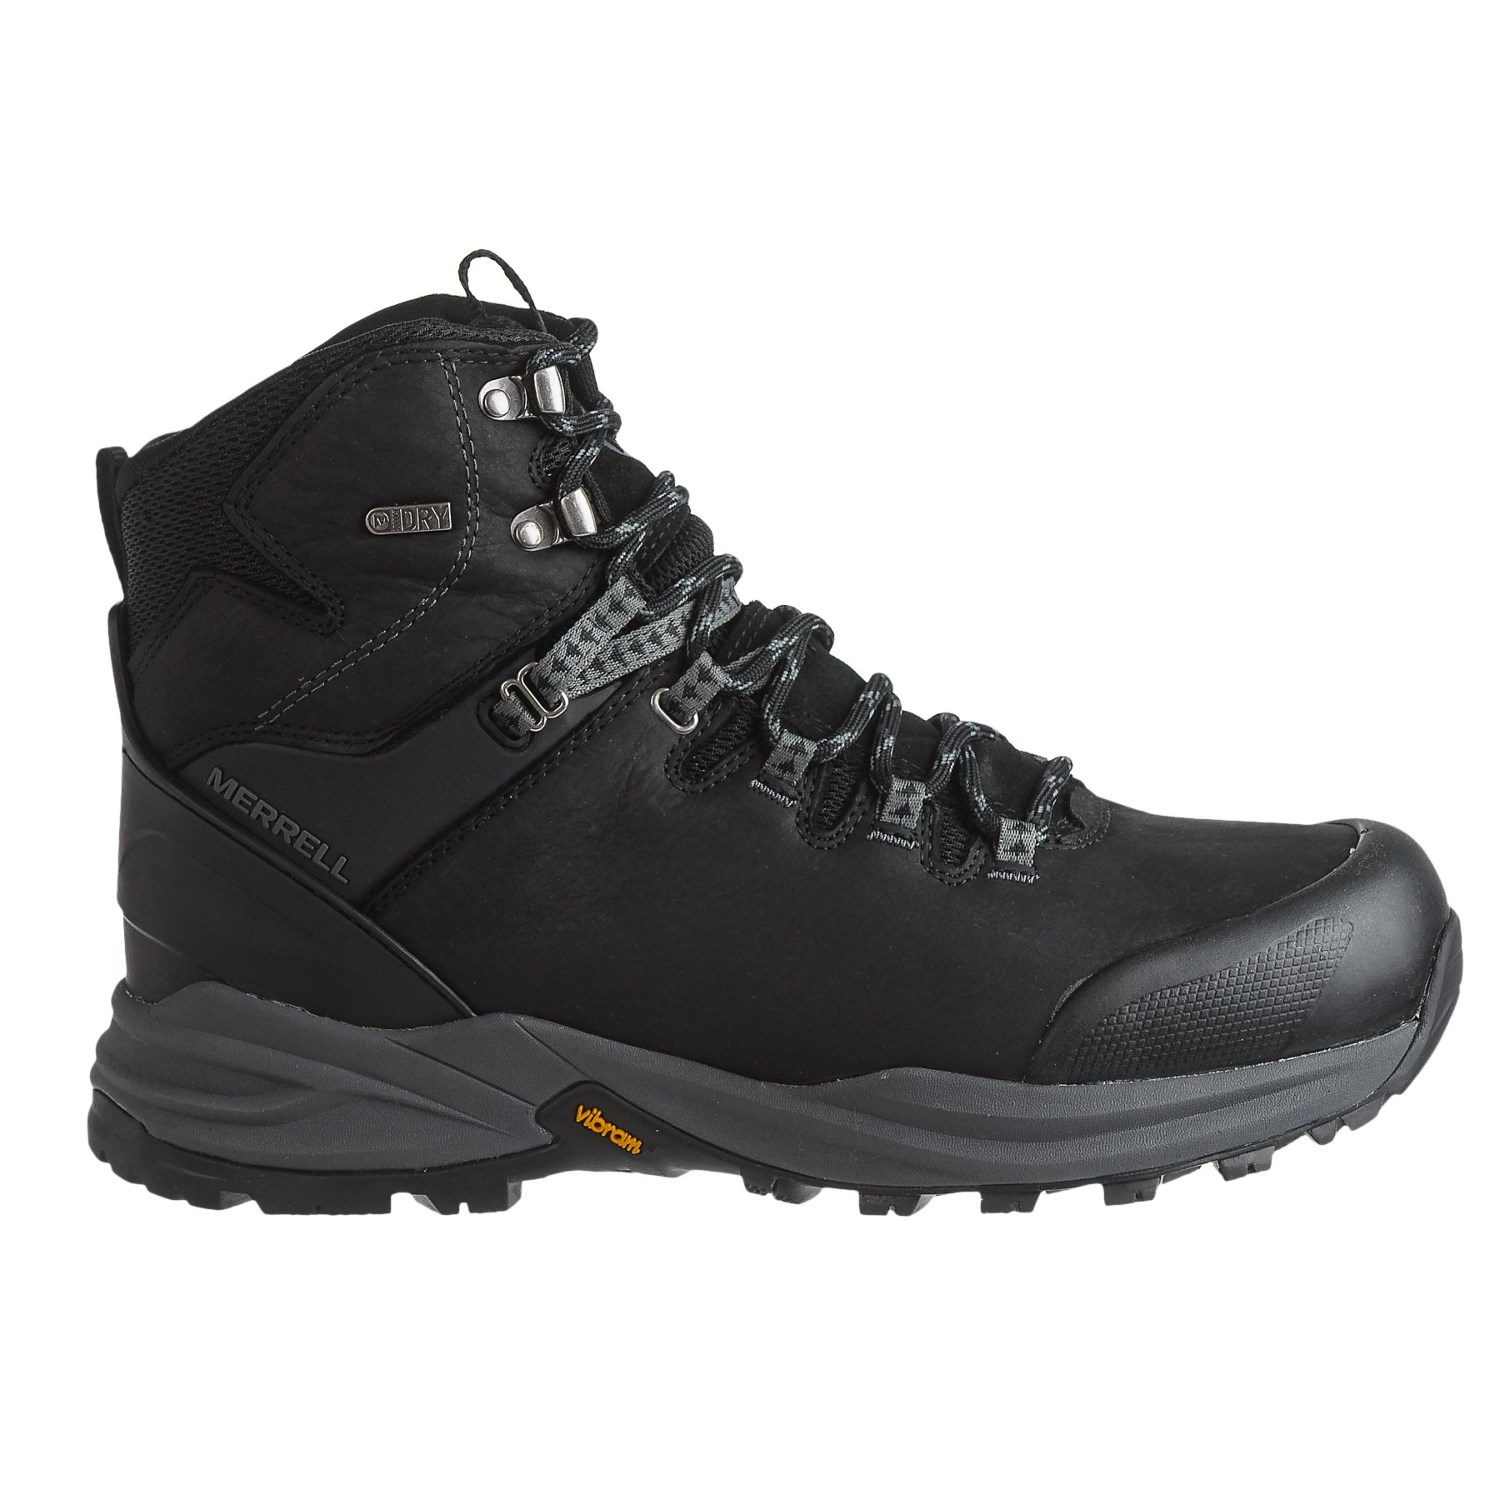 53803c43fc8 Merrell Phaserbound Hiking Boots (For Men) - Save 55%